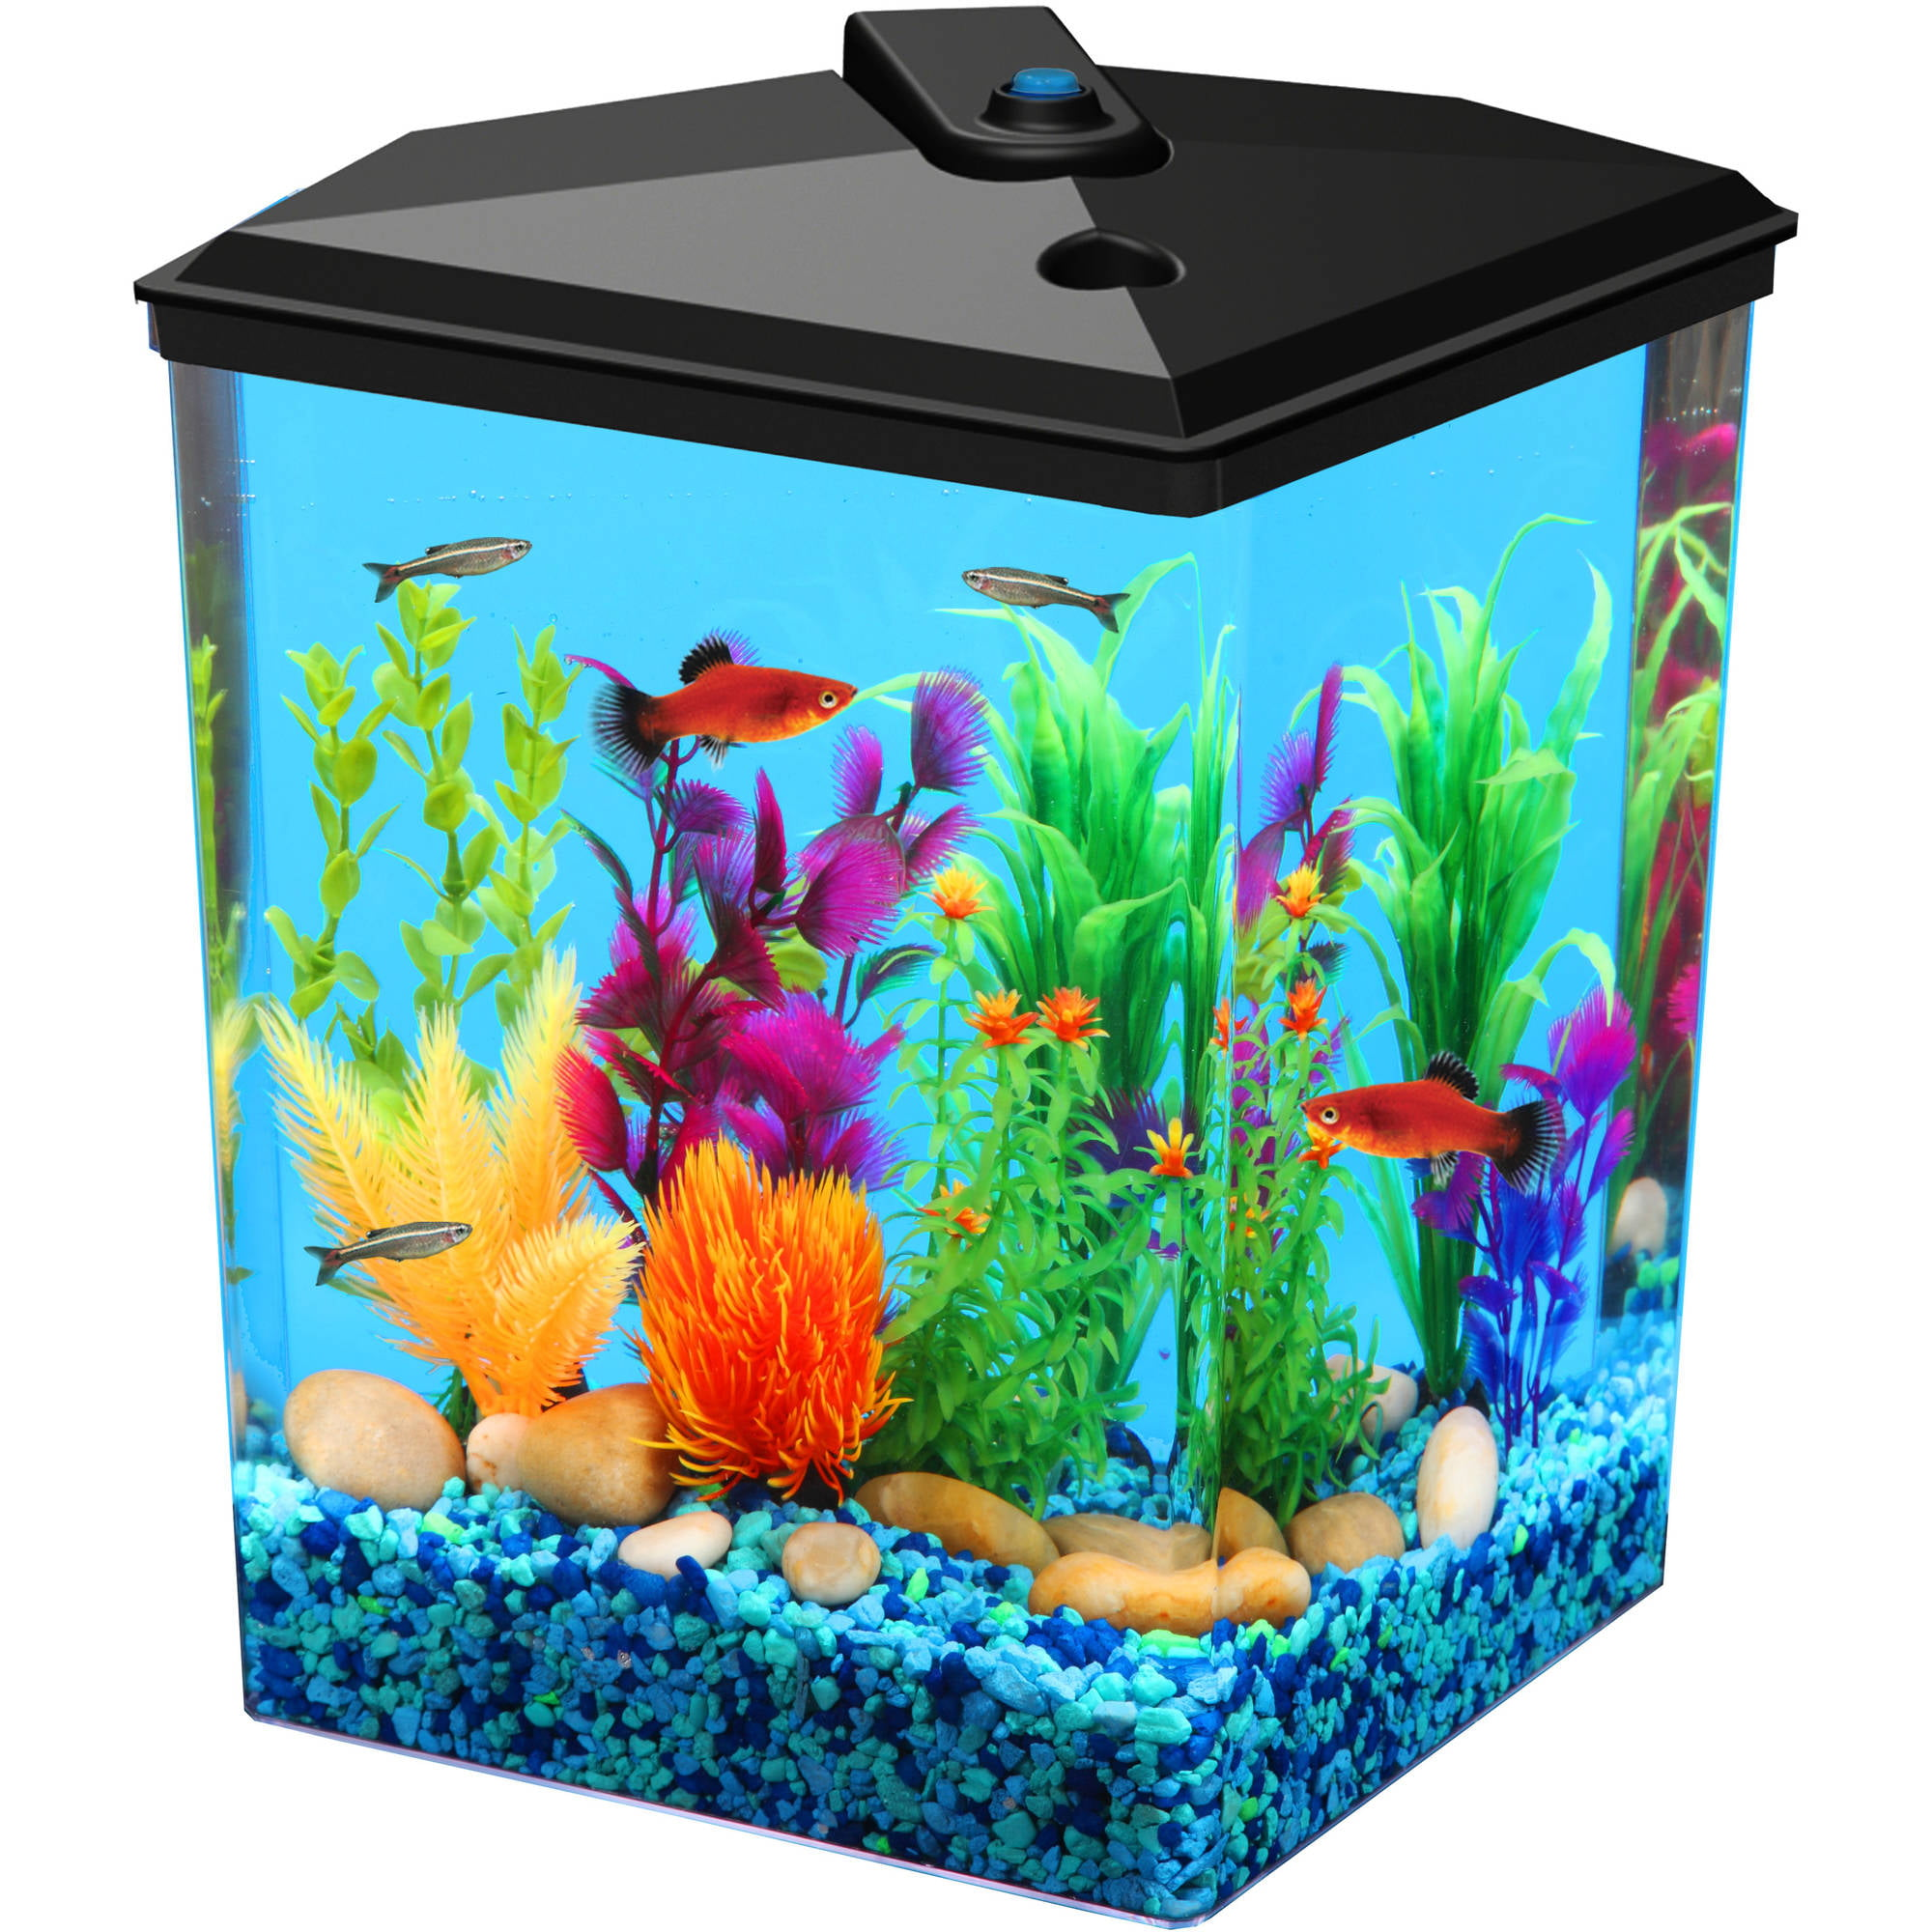 Fish tank volume calculator inches - Fish Tank Volume Calculator Inches 41